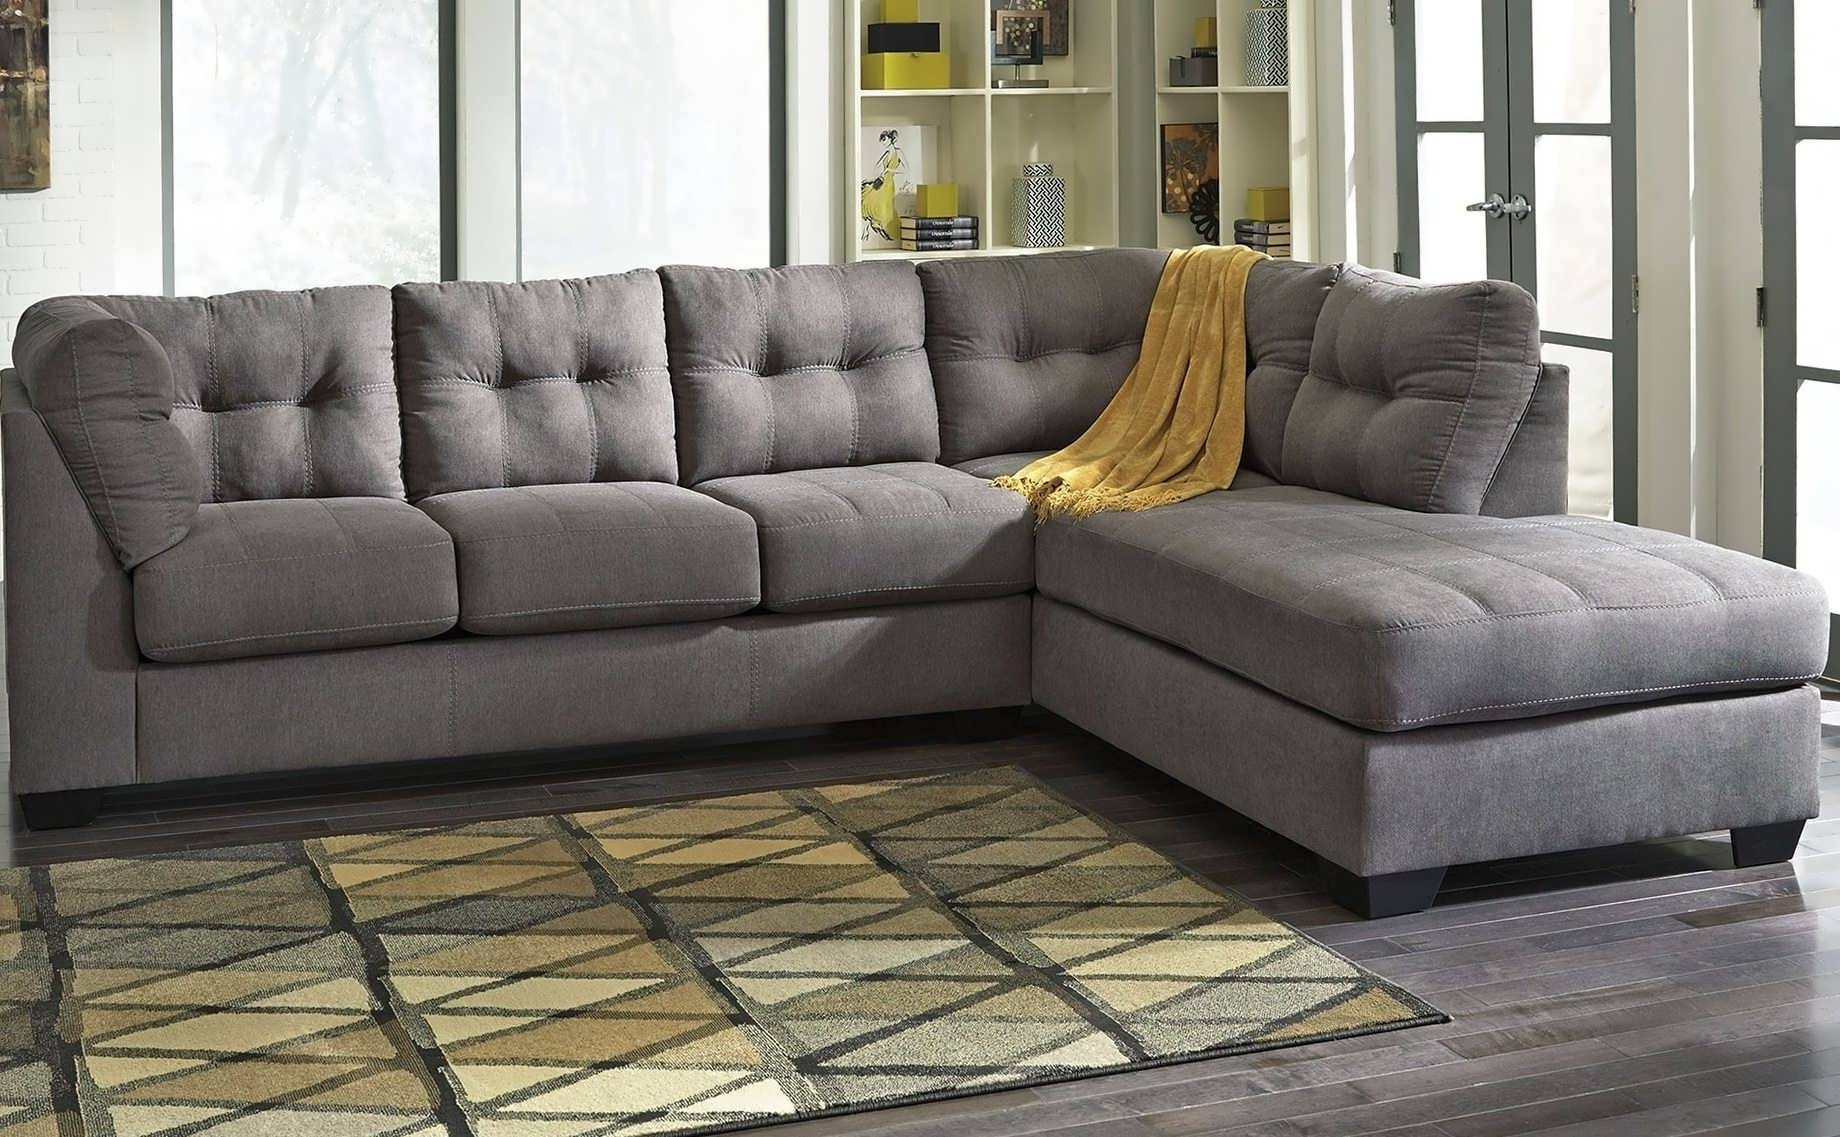 2017 Sectionals With Chaise Lounge Regarding Sofa : Grey Sectional With Chaise Oversized Sectional Sofa White (View 1 of 15)